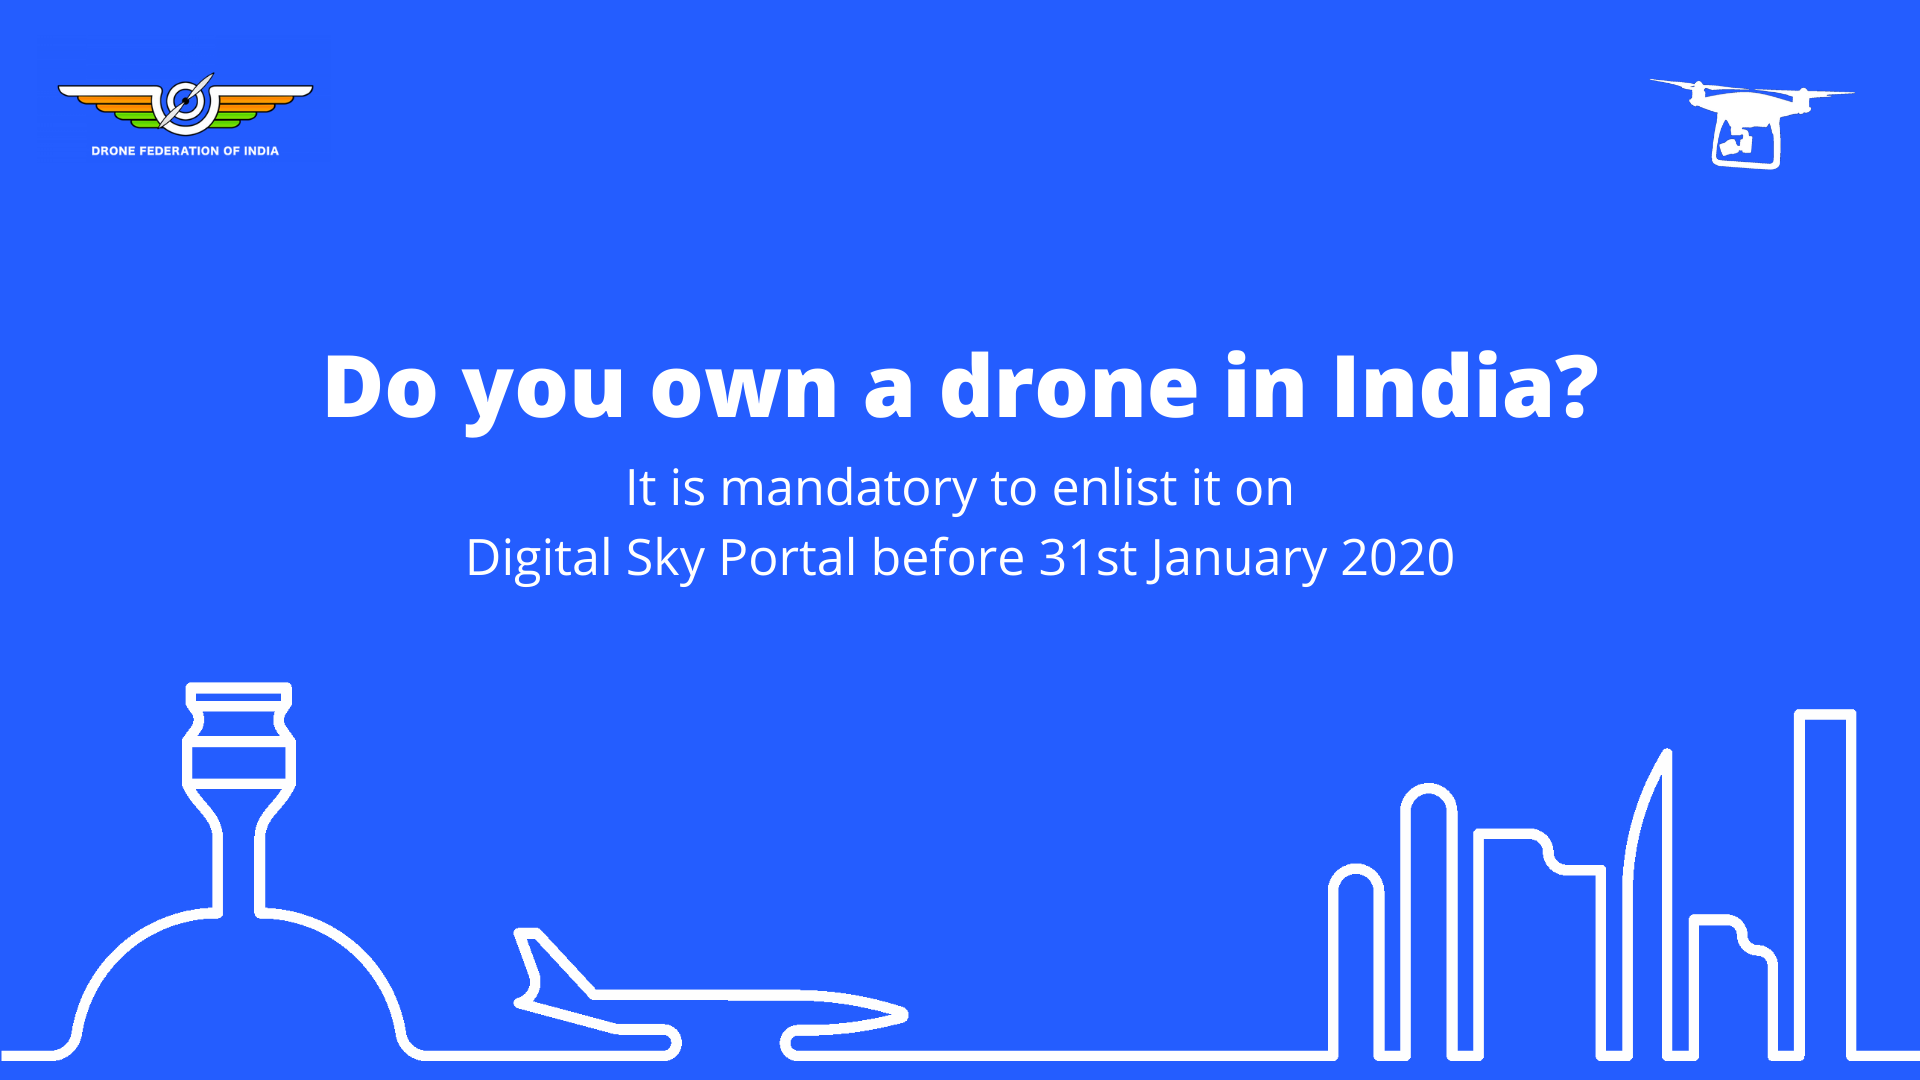 Enlist your drone on the Digital Sky Portal